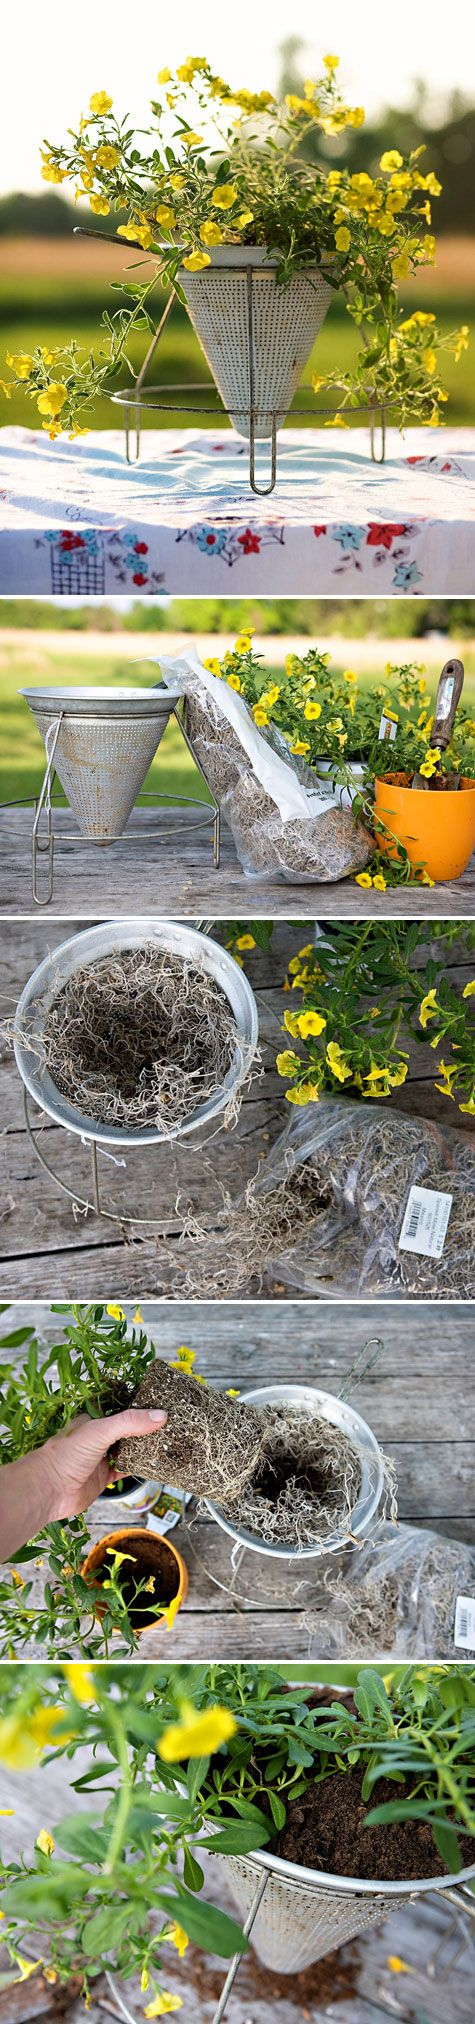 DIY PLANTERS :: Food Mill Planter Tutorial | #designsponge #foodmill #diyplanter